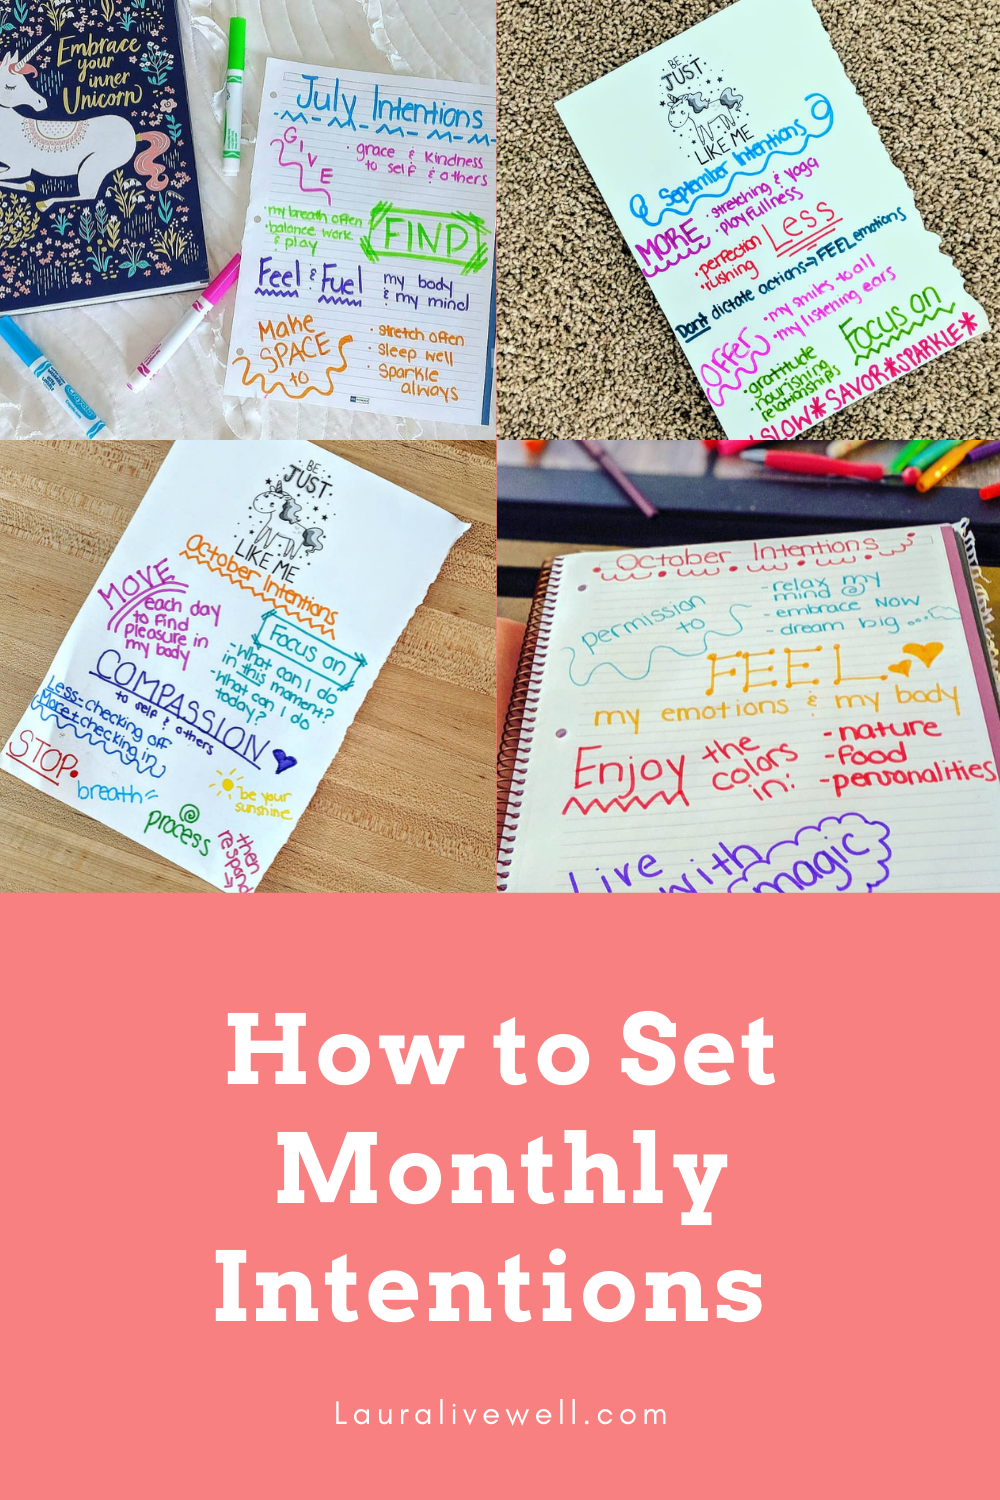 monthly intentions, wellness, wellness, girl, mind body soul, goal setting, intention setting, daily routine, mindset, mindfulness, meditation, yoga, self care, self love, fitness, healthy lifestyle, healthy goals, well-being, journal, daily journal, gratitude